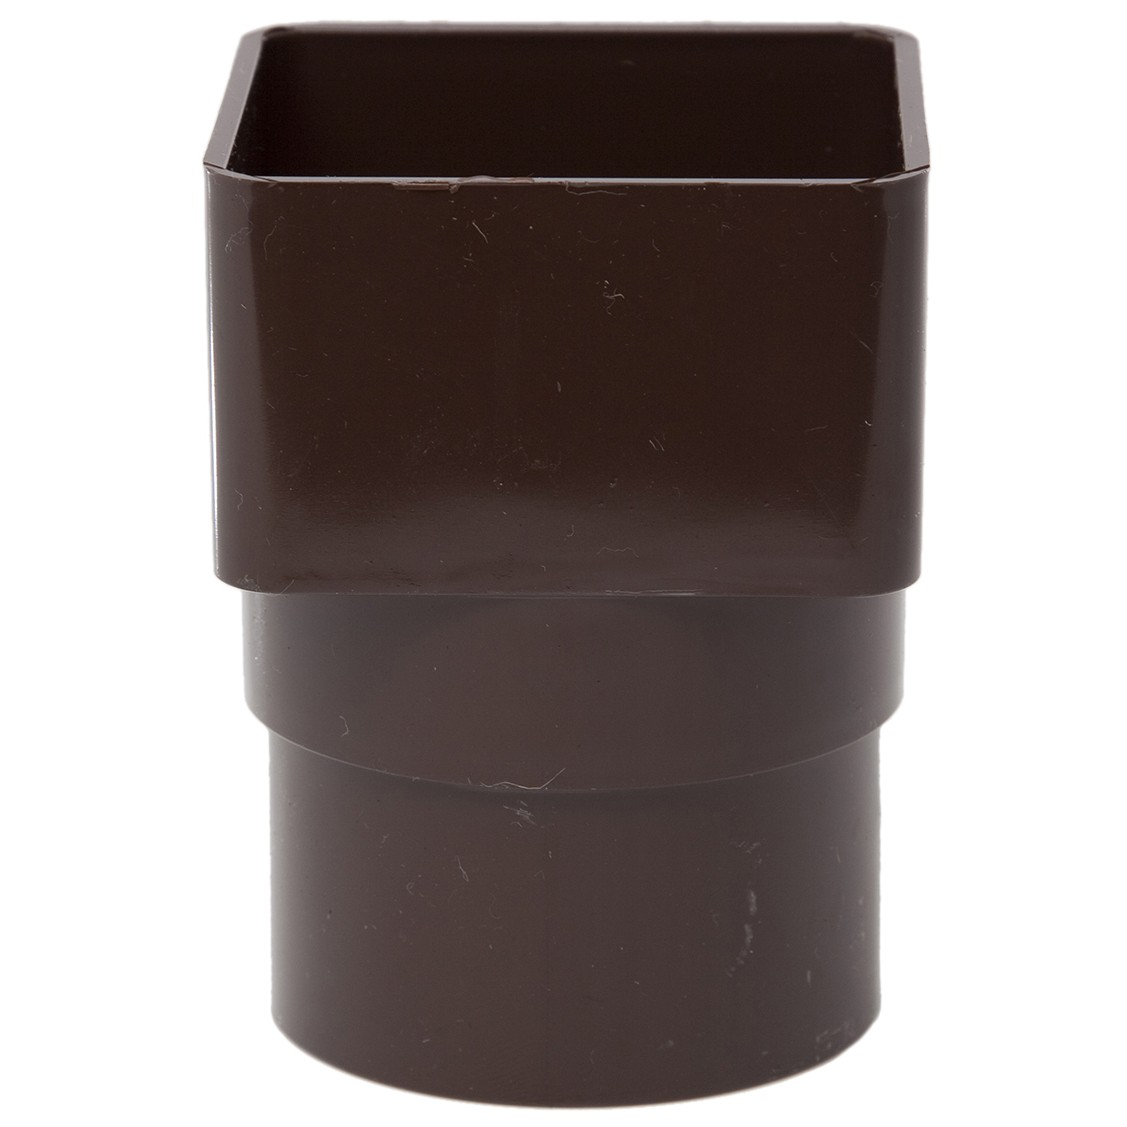 Polypipe 65mm Square to 68mm Round Down Pipe Adaptor - Brown